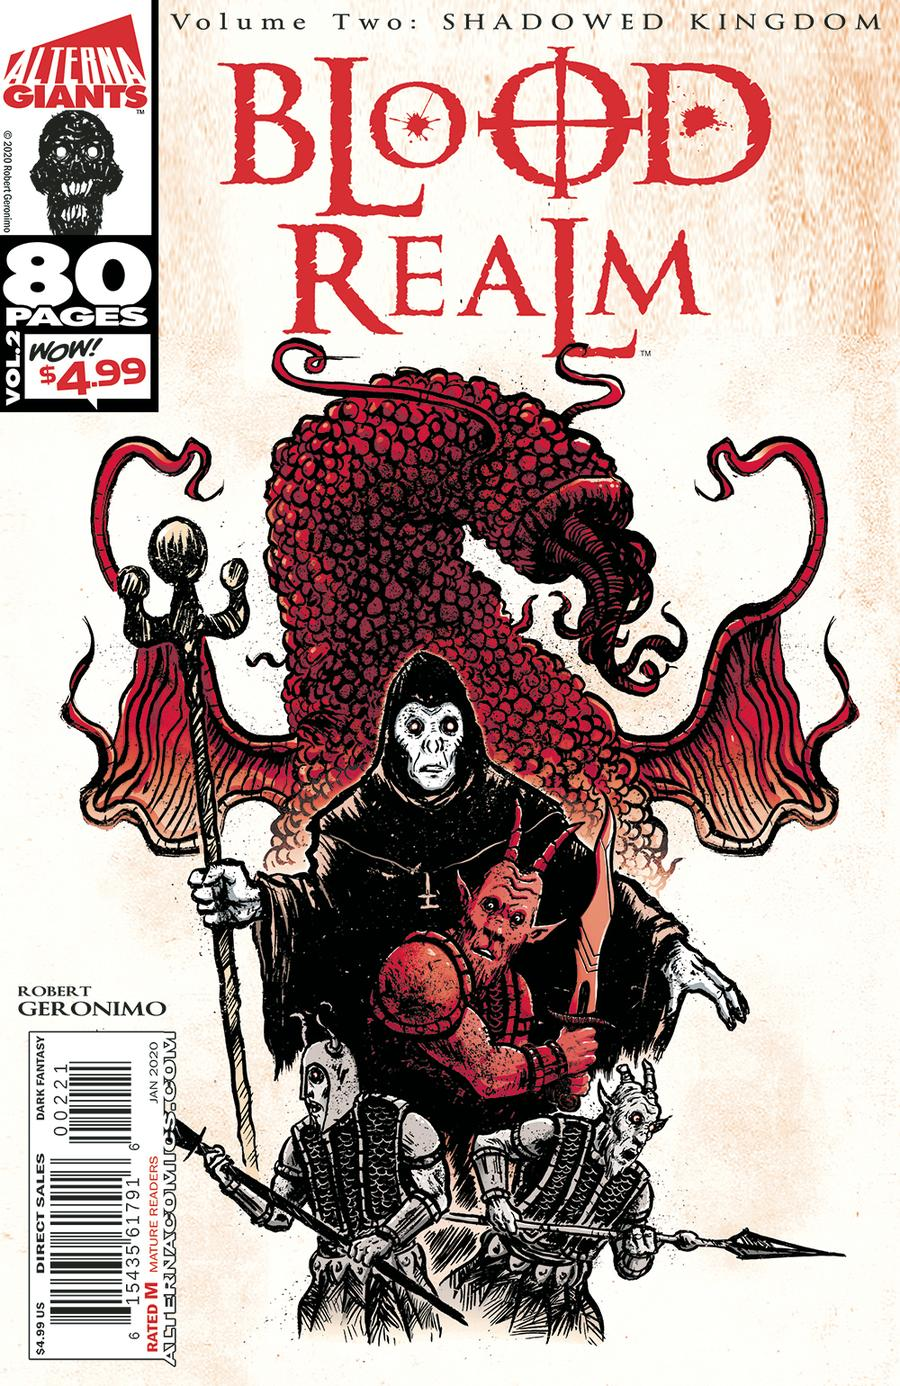 Alterna Giants Blood Realm Vol 2